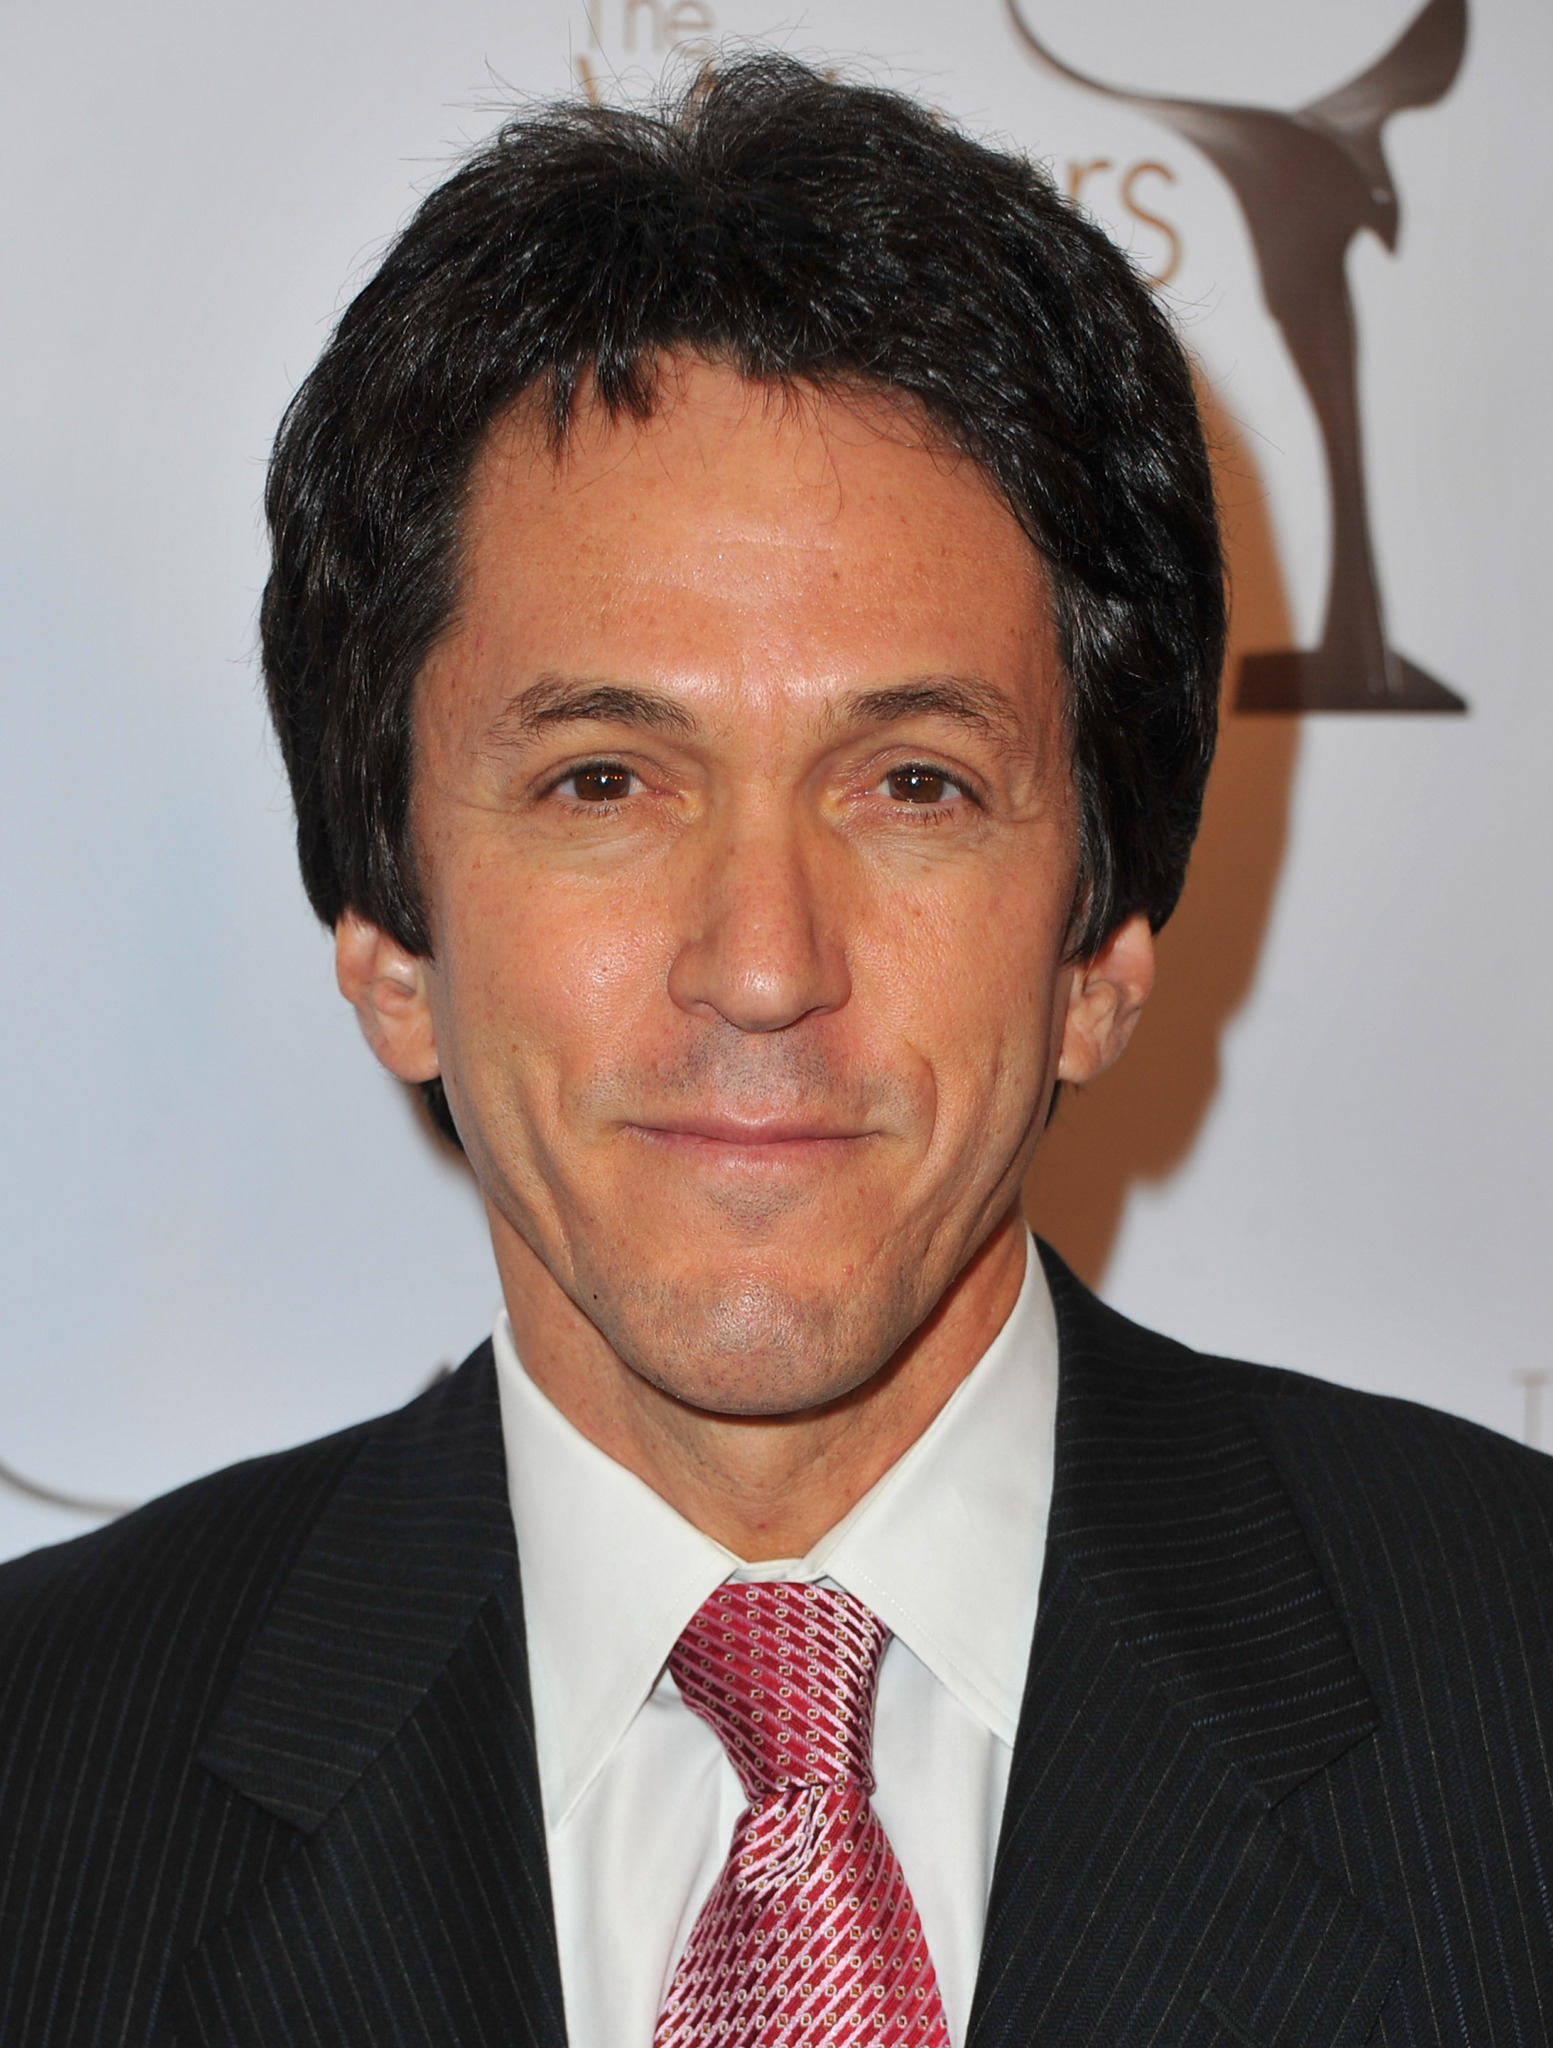 1958 : Mitch Albom Born, Newspaper Columnist, Radio Show Host, TV Commentator and Bestselling Author